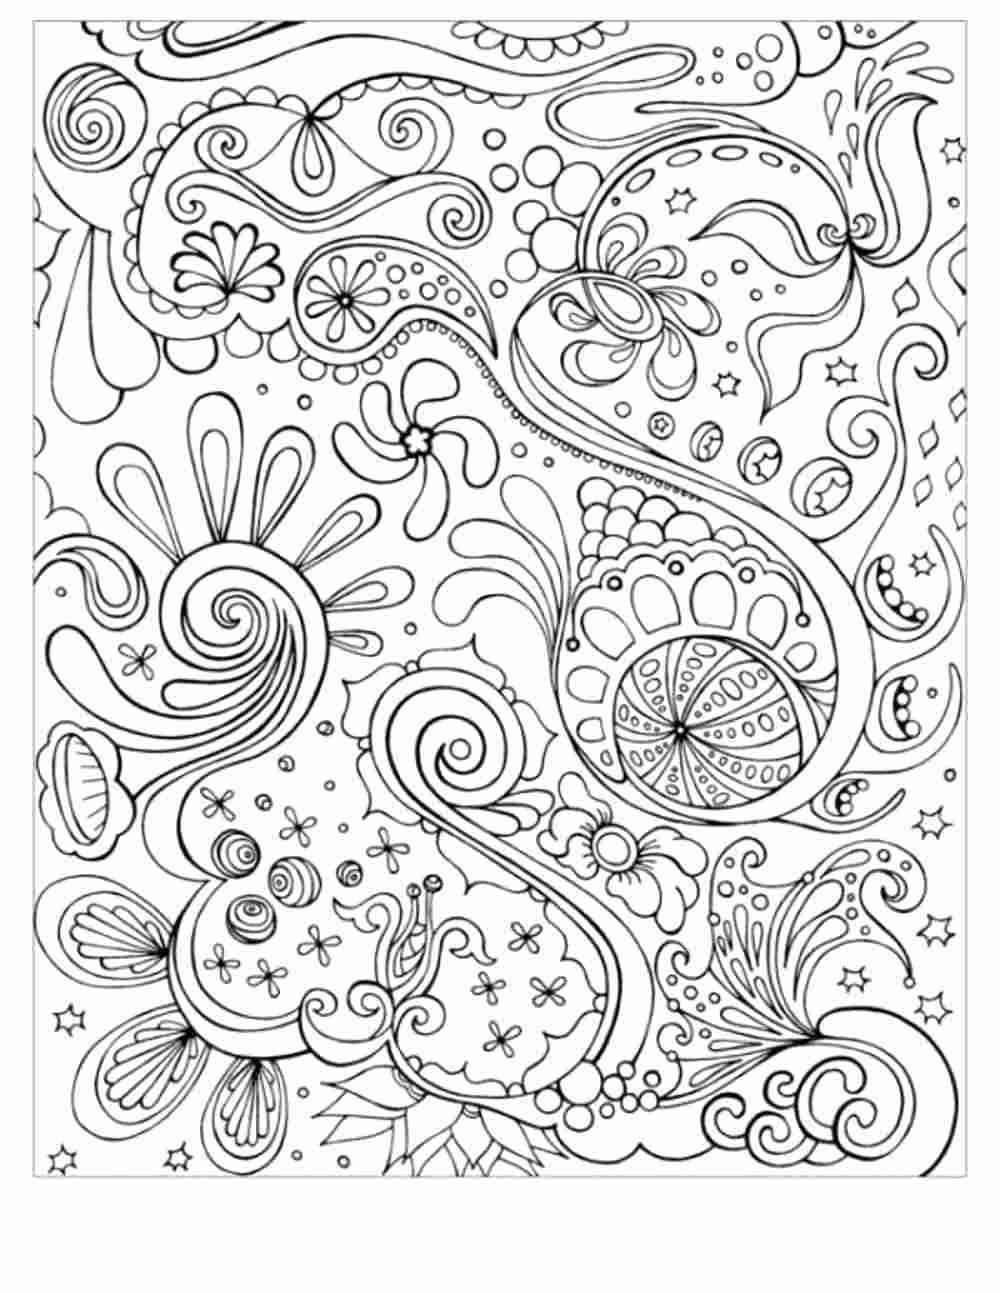 Abstract Coloring Pages Line Mapiraj Collection Of Snowflake Coloring Pages for Adults Coloring Pages Inspiring Printable